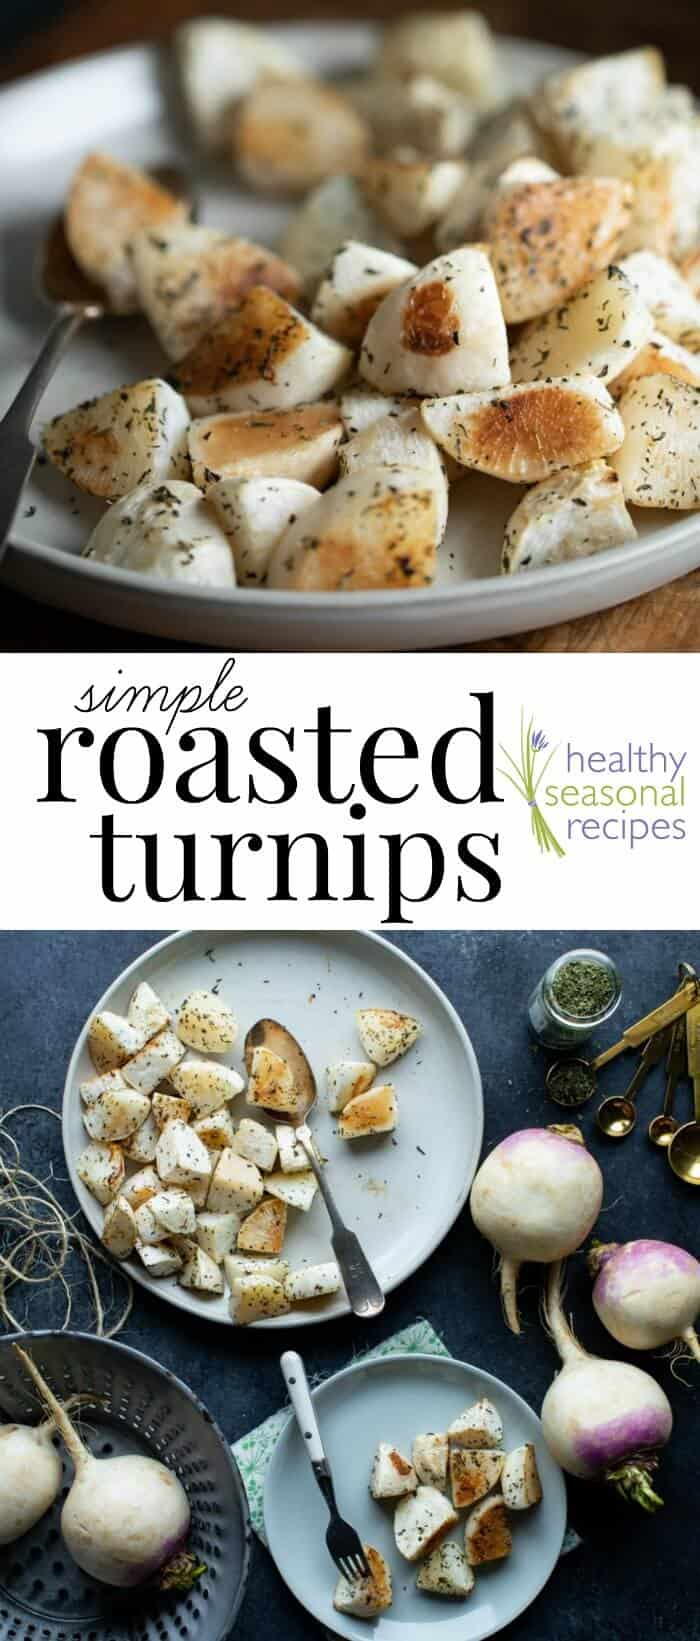 Simple Roasted Turnips! A lower starch vegetable side dish. (only 9 g net carbs!) A great alternative to roasted potatoes, and whole 30 and paleo. 83 calories per cup. #healthyseasonal #glutenfree #grainfree #dairyfree #vegan #sidedish #paleo #whole30 #cleaneating #lowcalorie #healthy